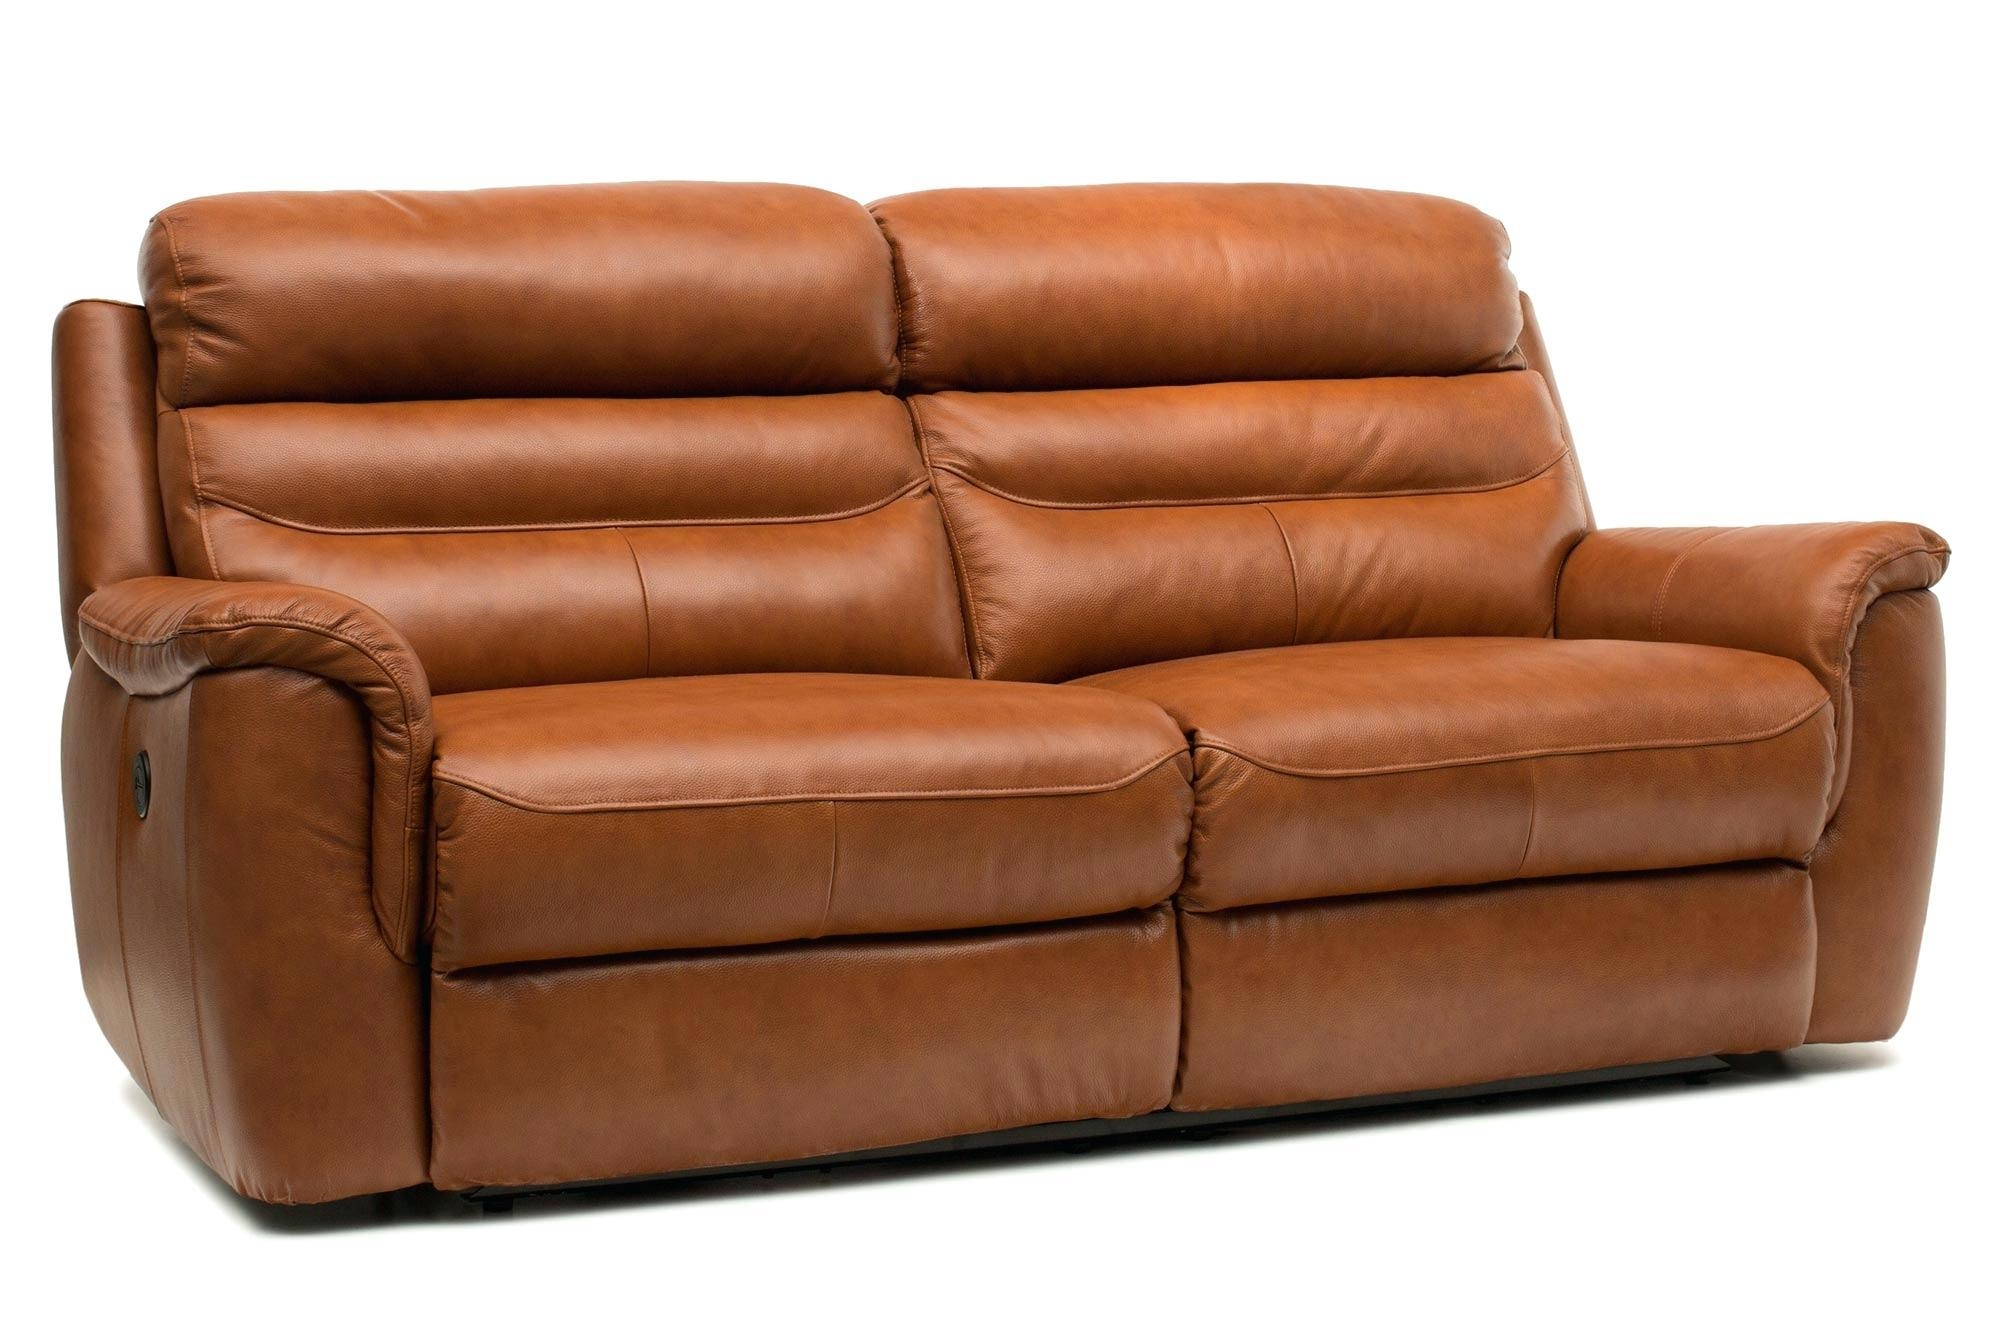 Leather Fabric Sofas Uk Mix Sofa Material Cushions #15511 Gallery With Leather And Material Sofas (Image 12 of 21)